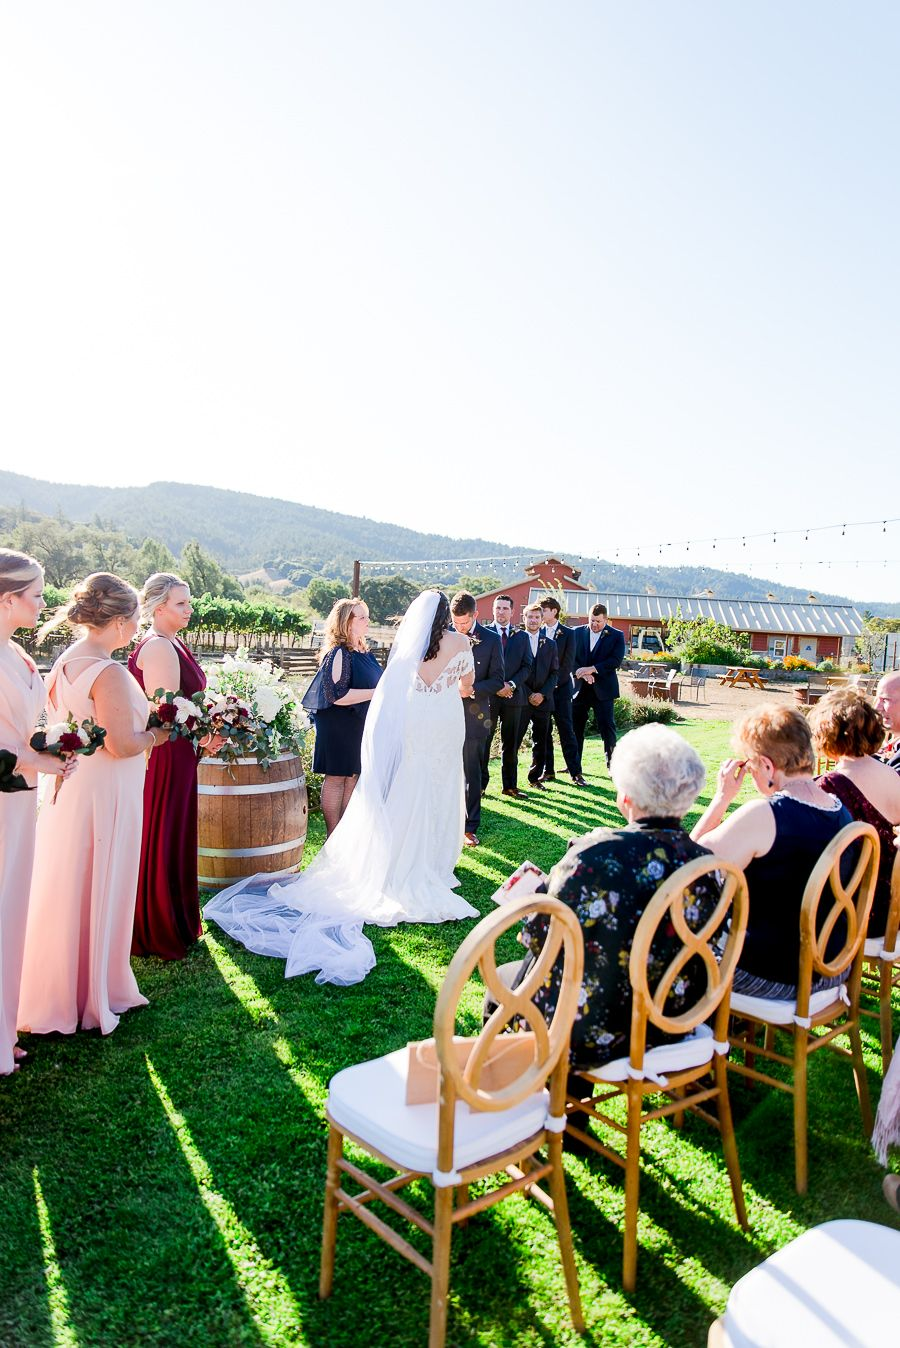 bride and groom face each other in front of wedding guests at outdoor fall wedding on Pennyroyal Farm in North Cali